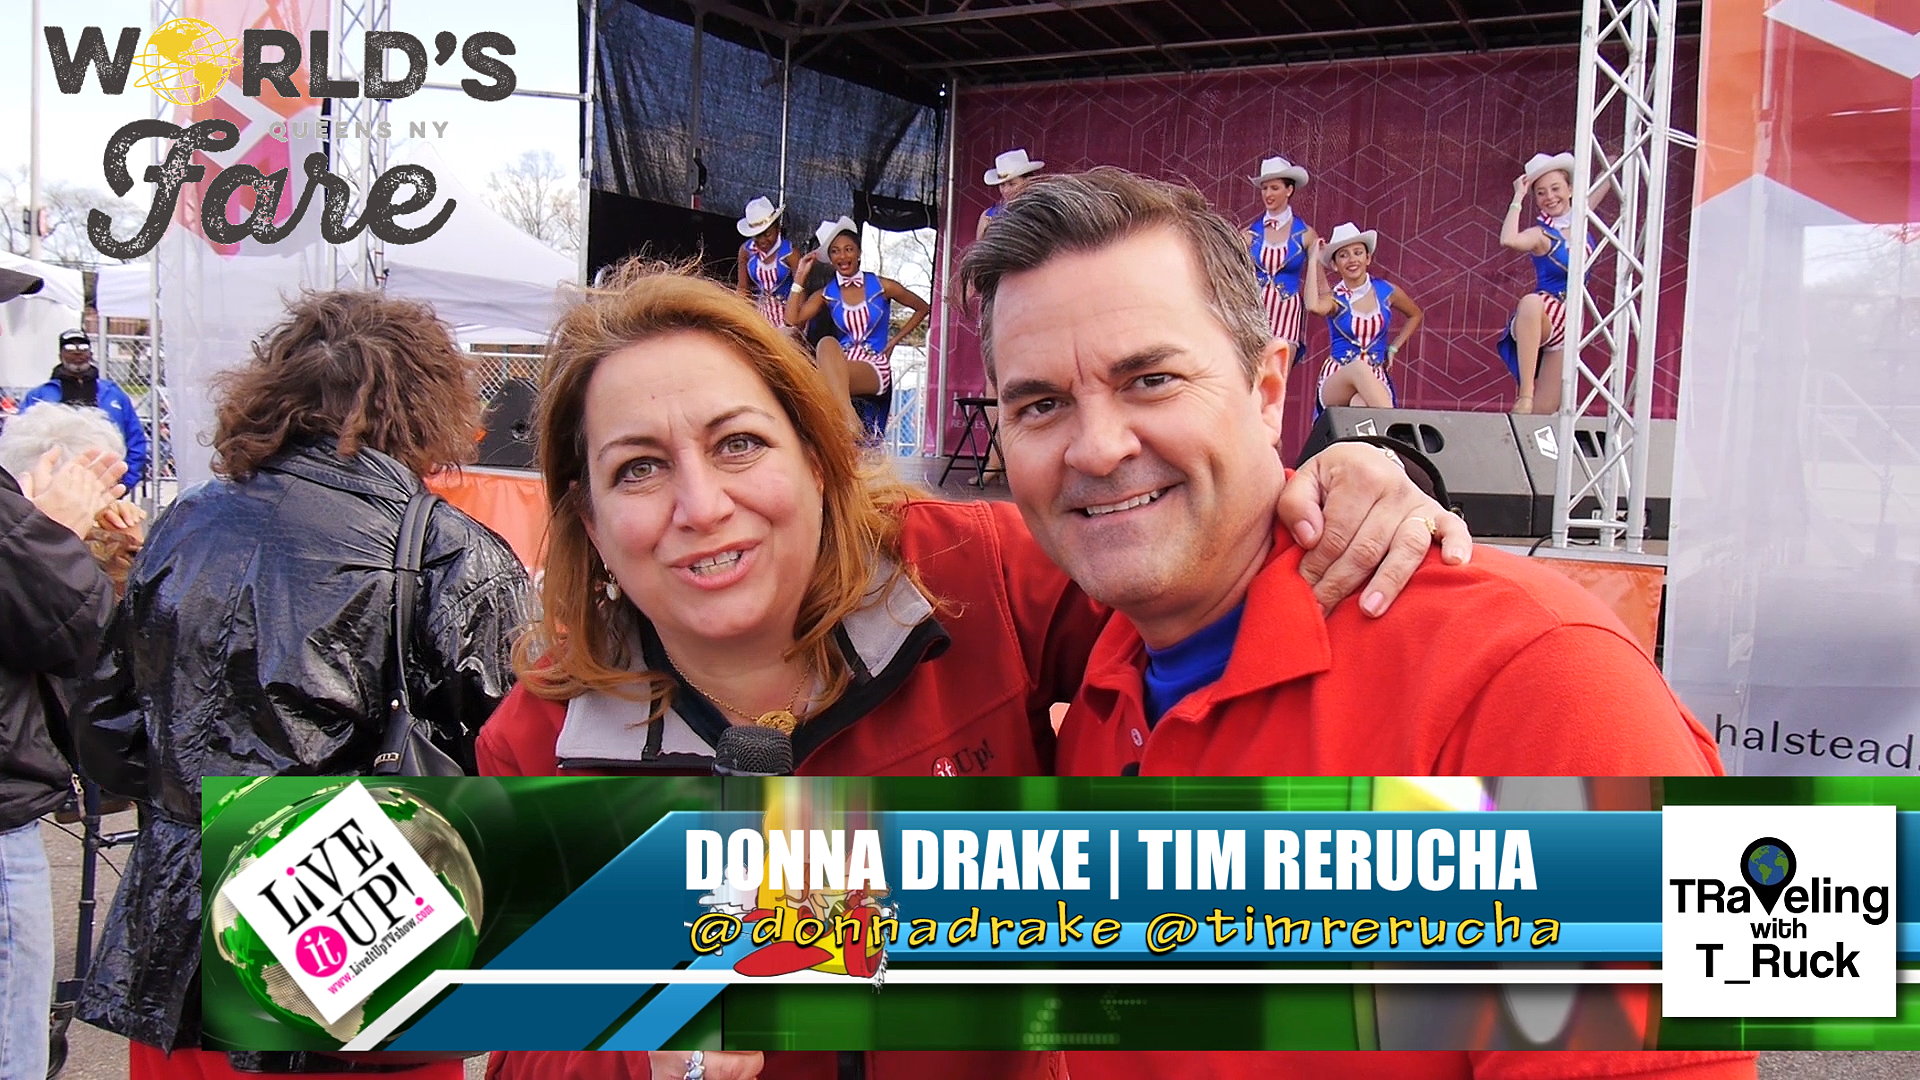 Live it Up with Donna Drake and Tim Rerucha a.k.a. T_Ruck at the WORLD'S FARE